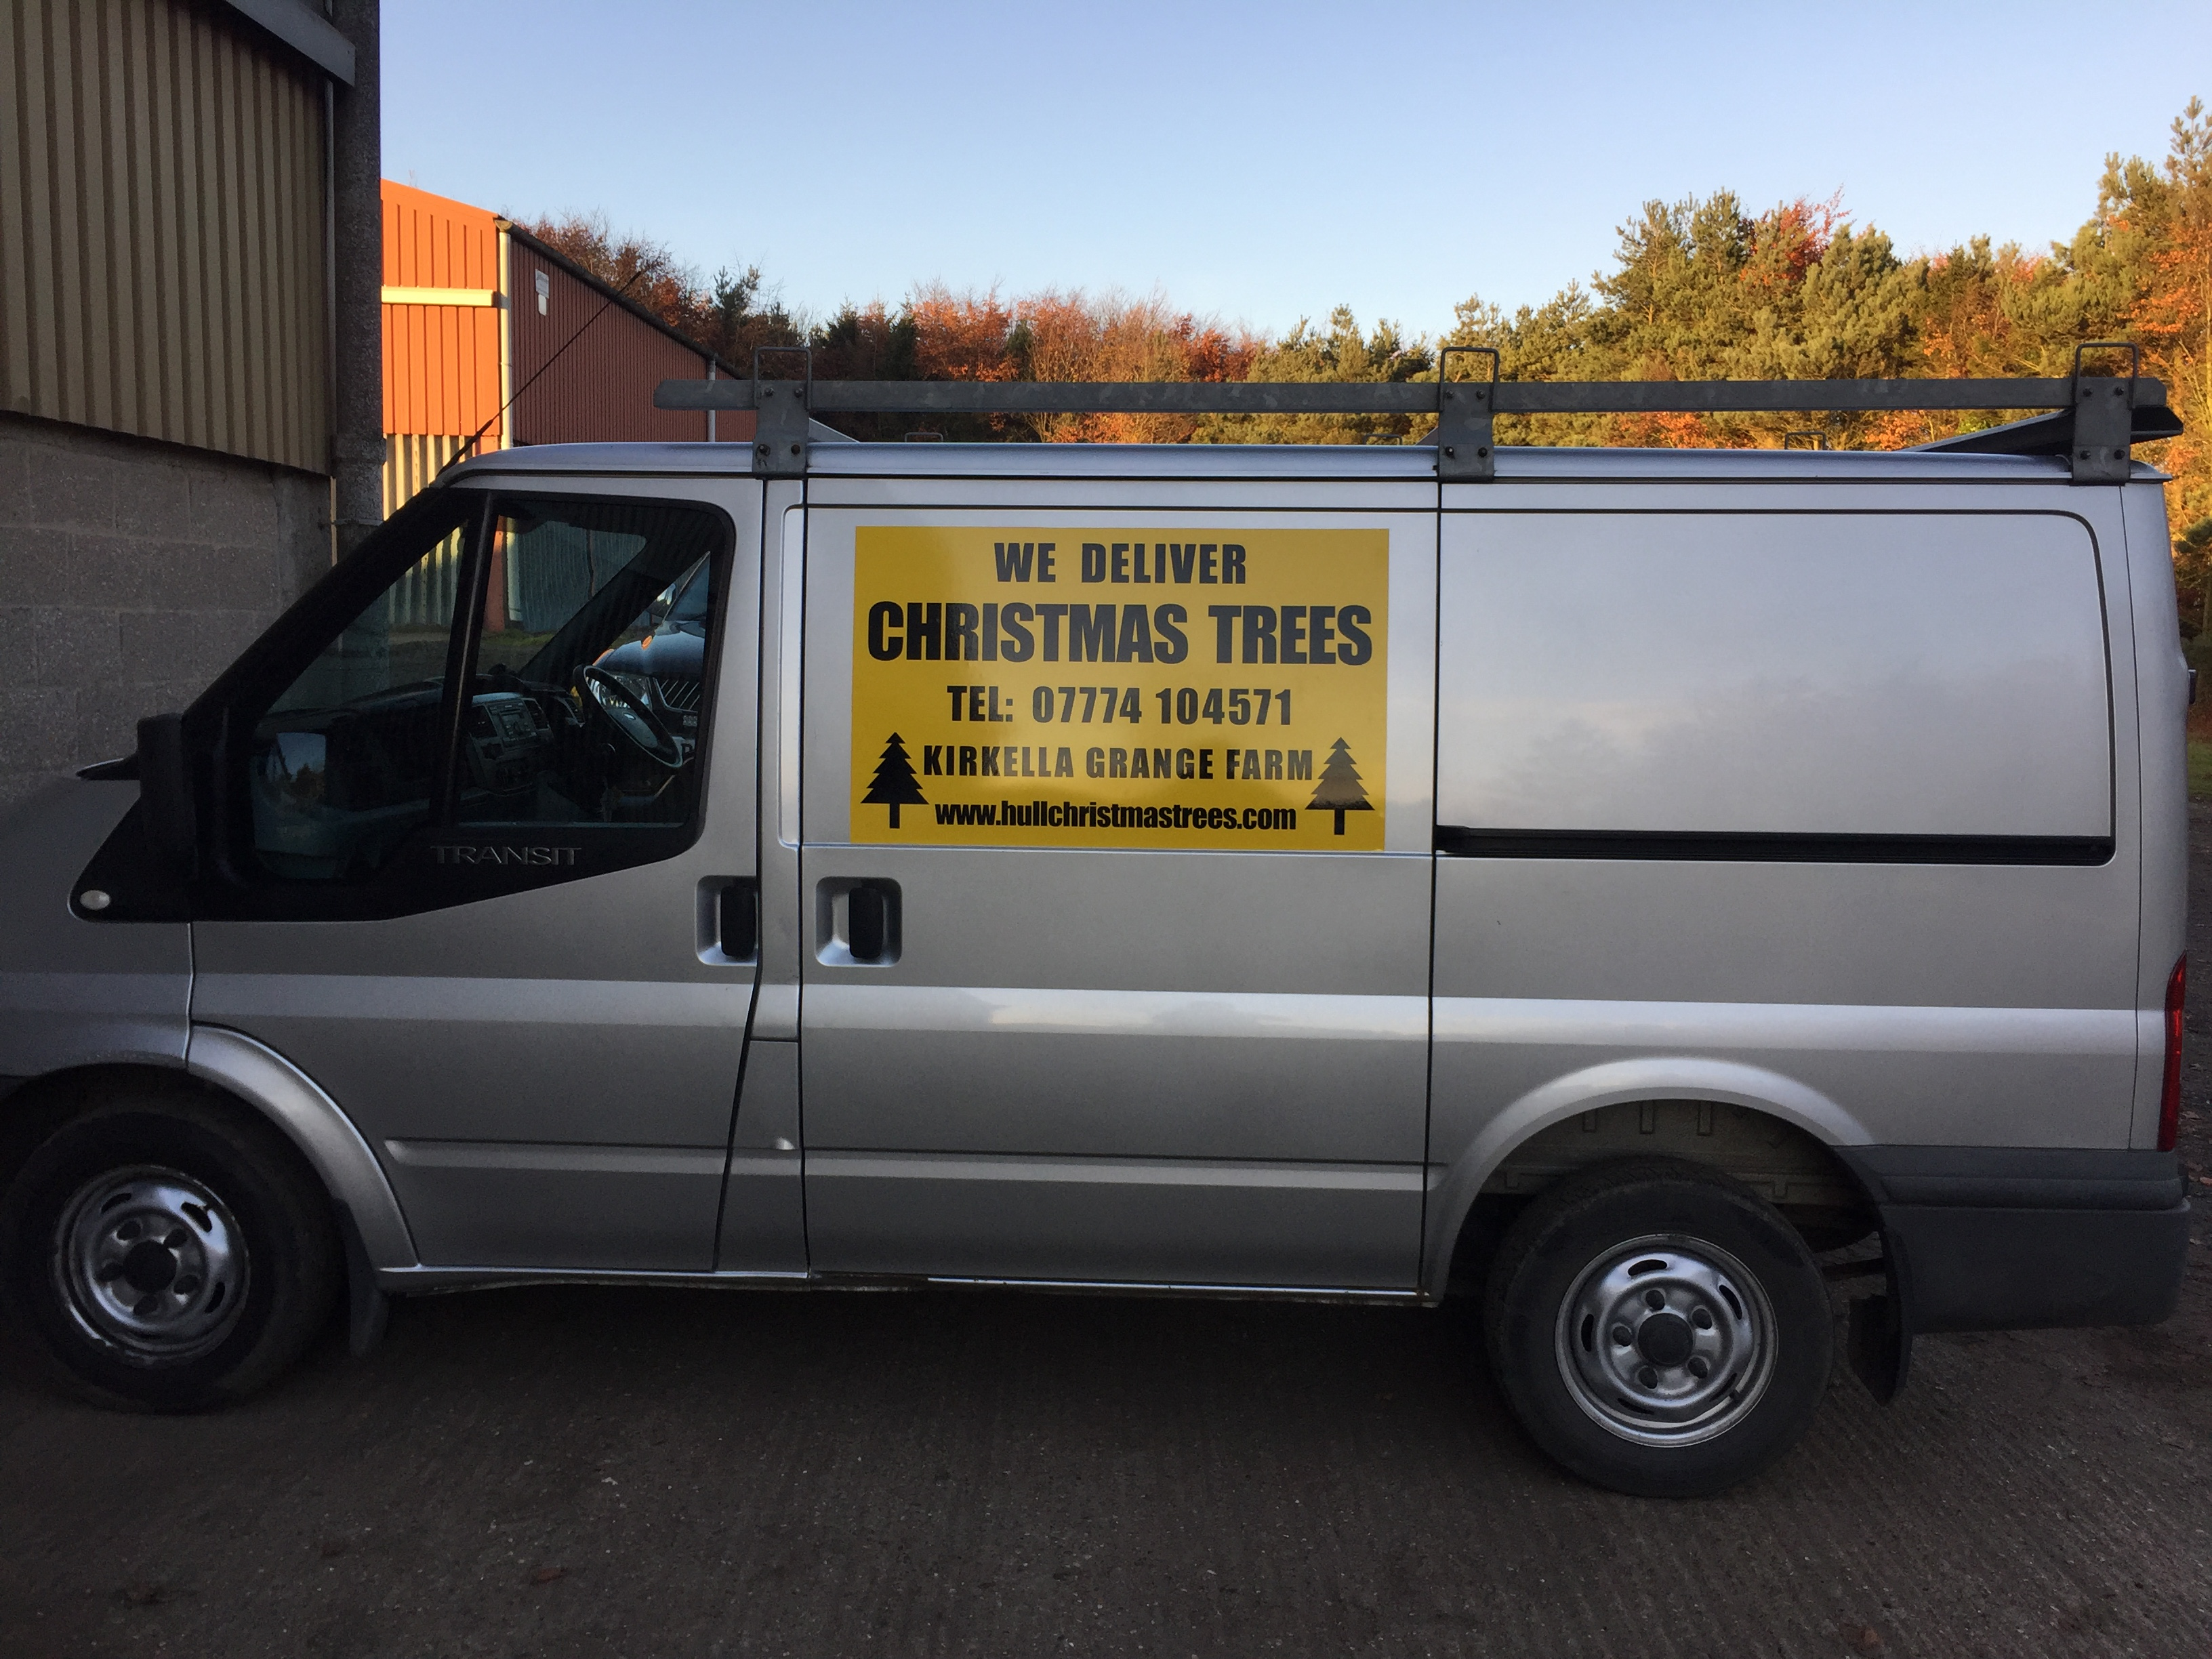 Hull Christmas Trees Deliver